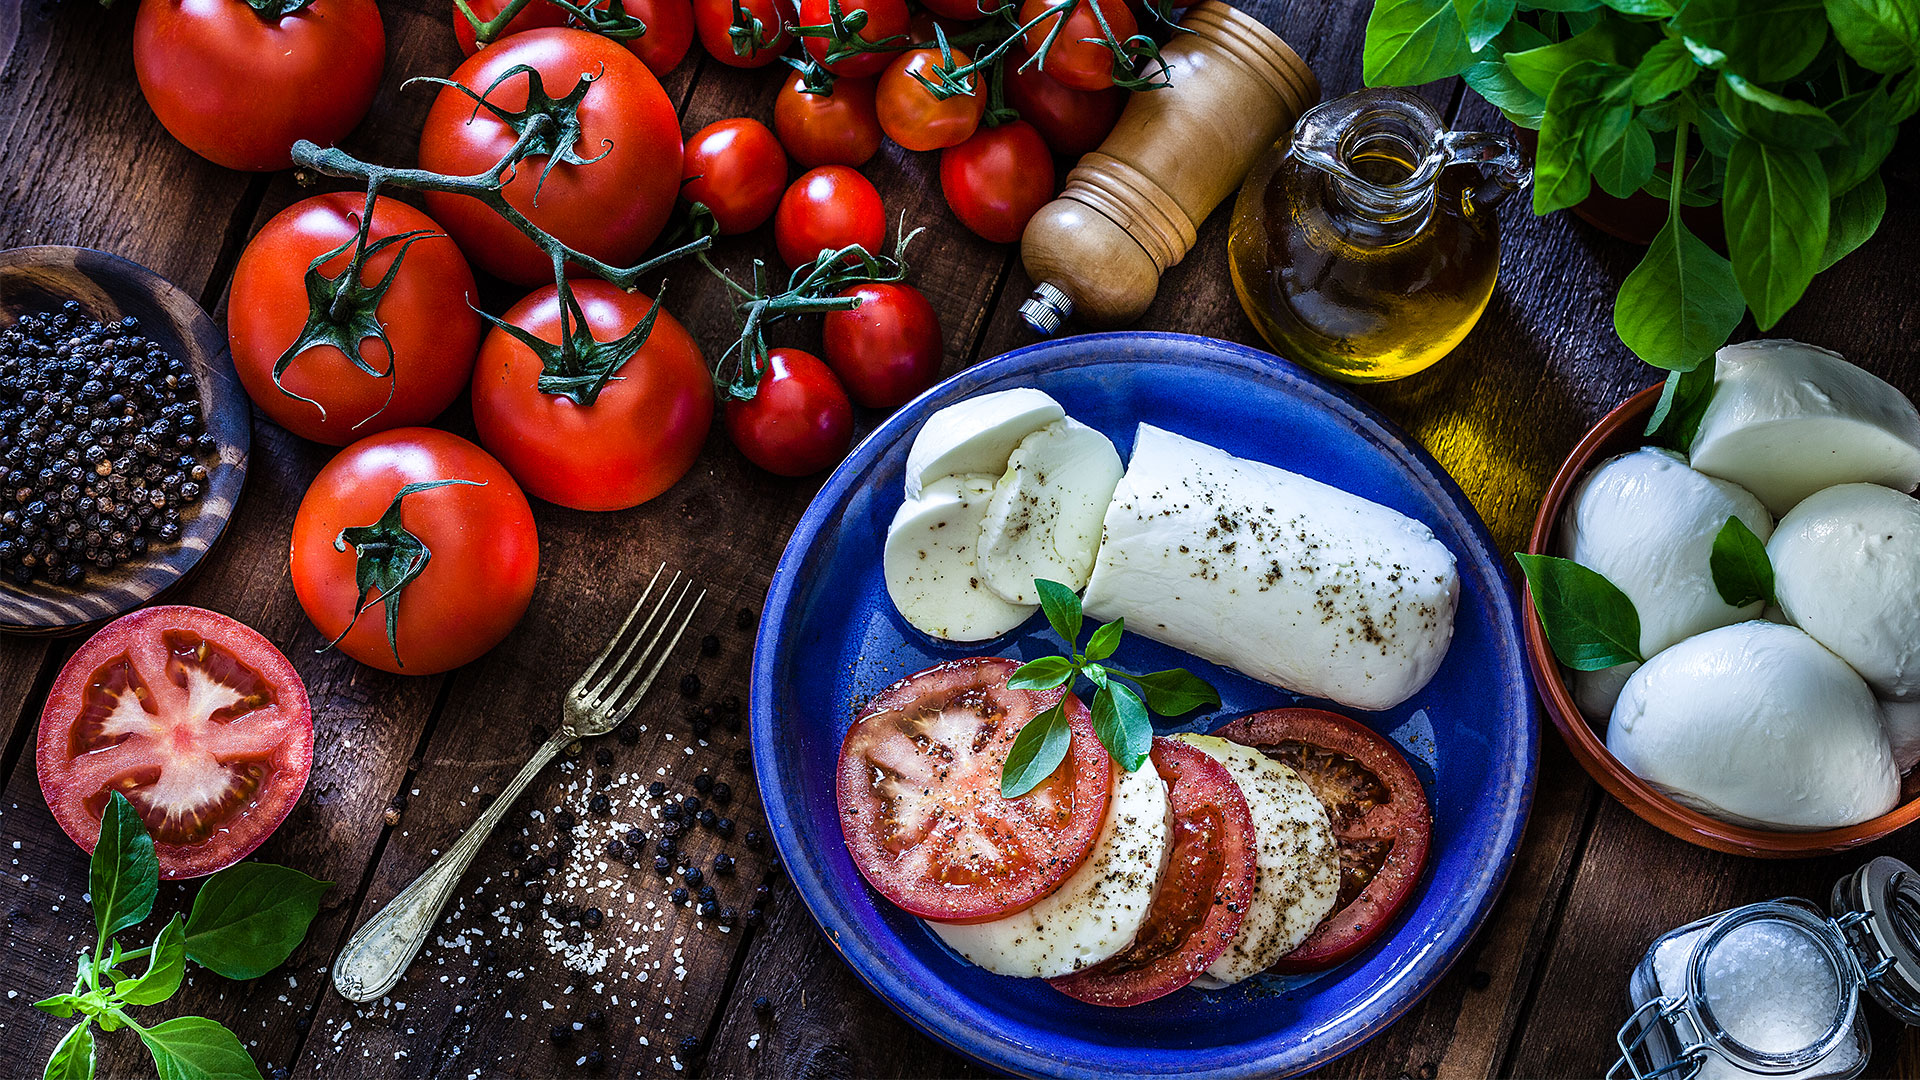 The Case for Eating More Caprese Salad